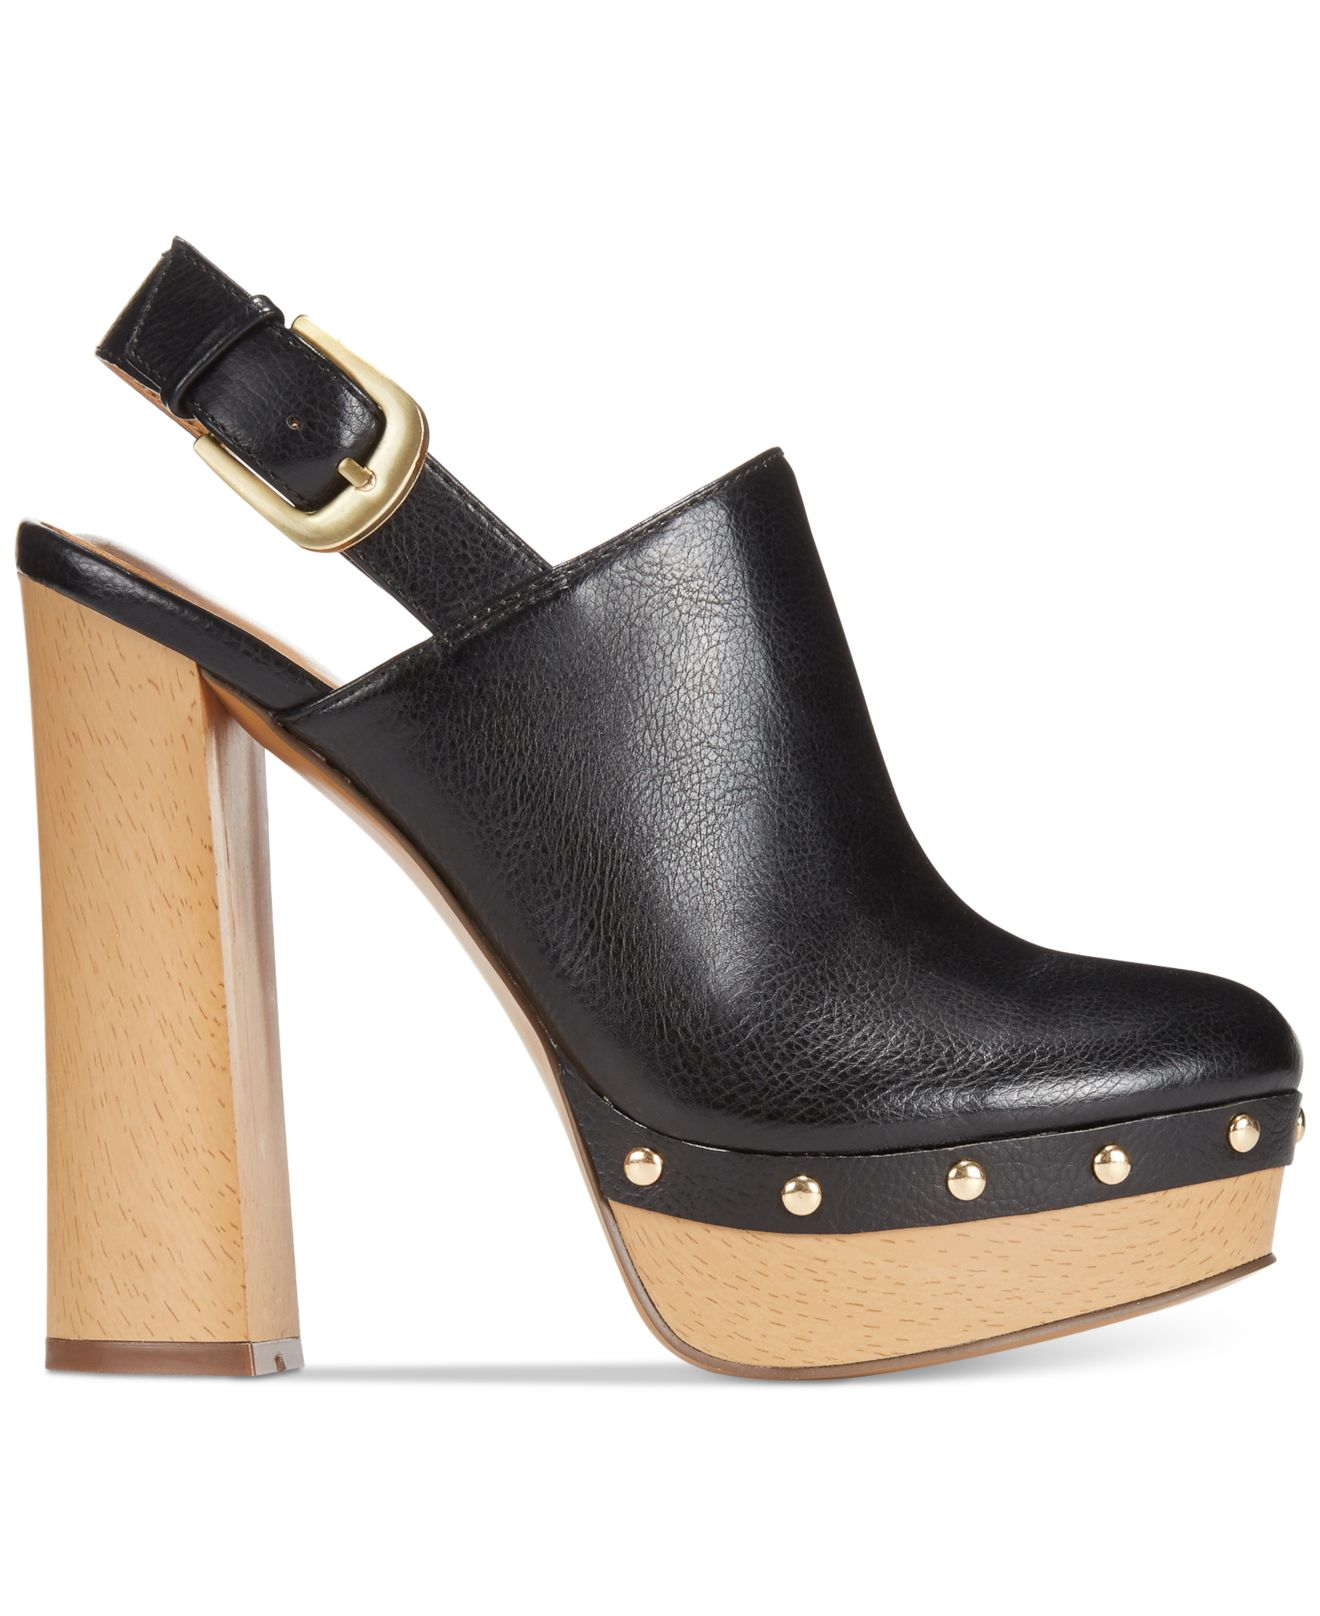 Discussion on this topic: Trend Report: Clogs, trend-report-clogs/